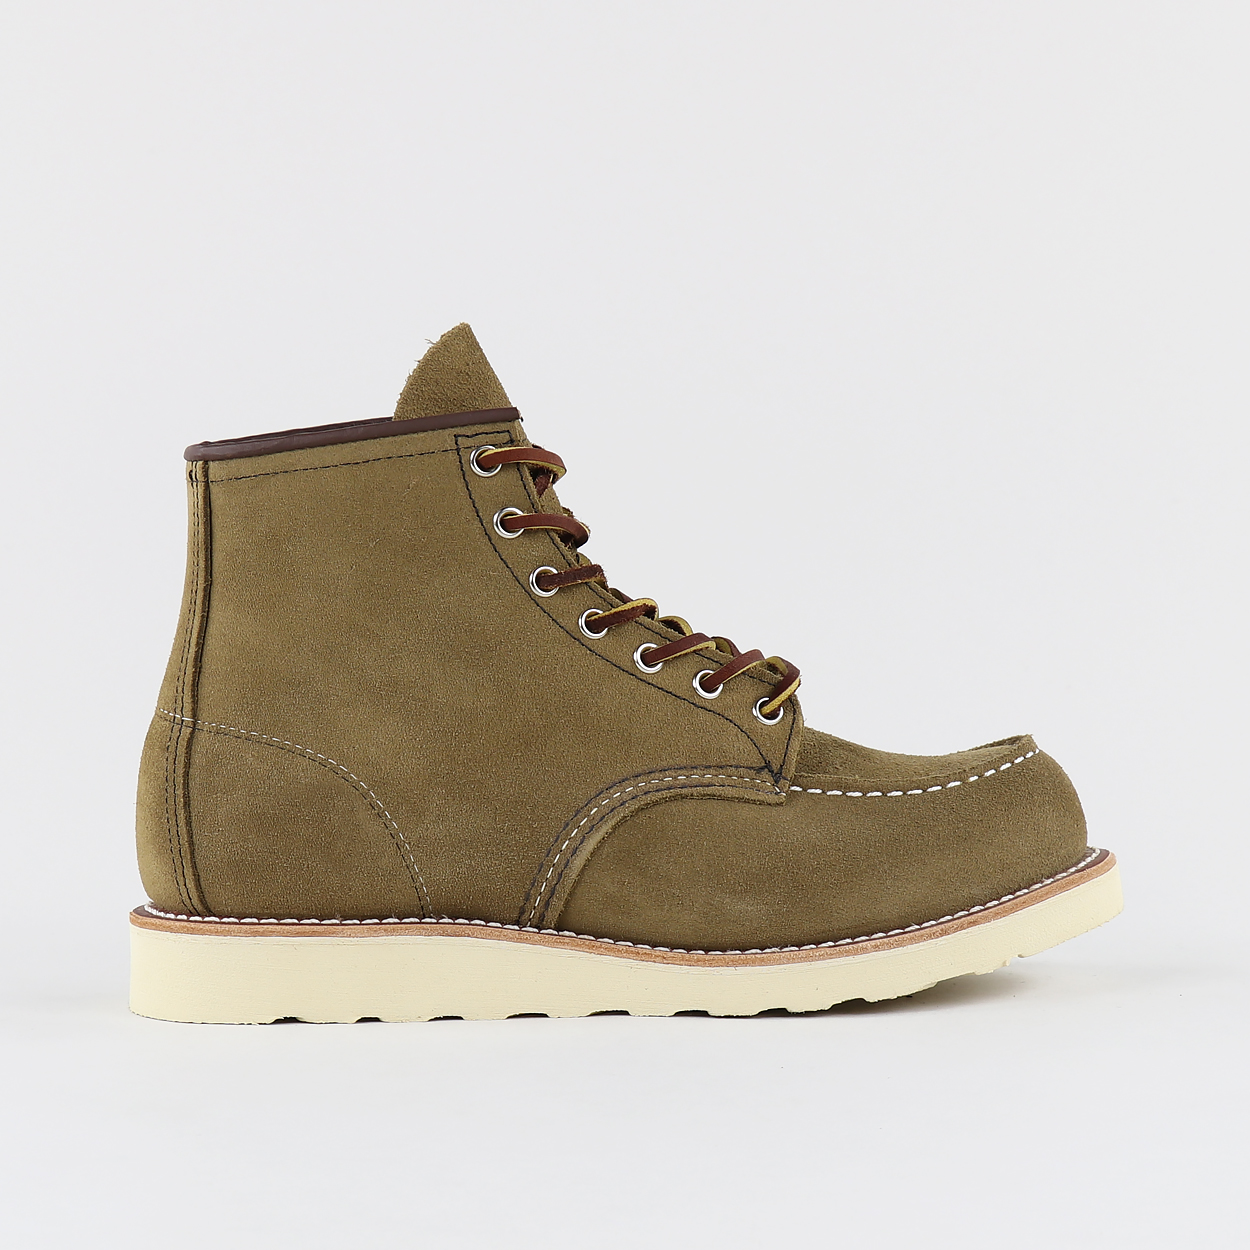 Red Wing Classic Moc Toe Suede Boots Olive